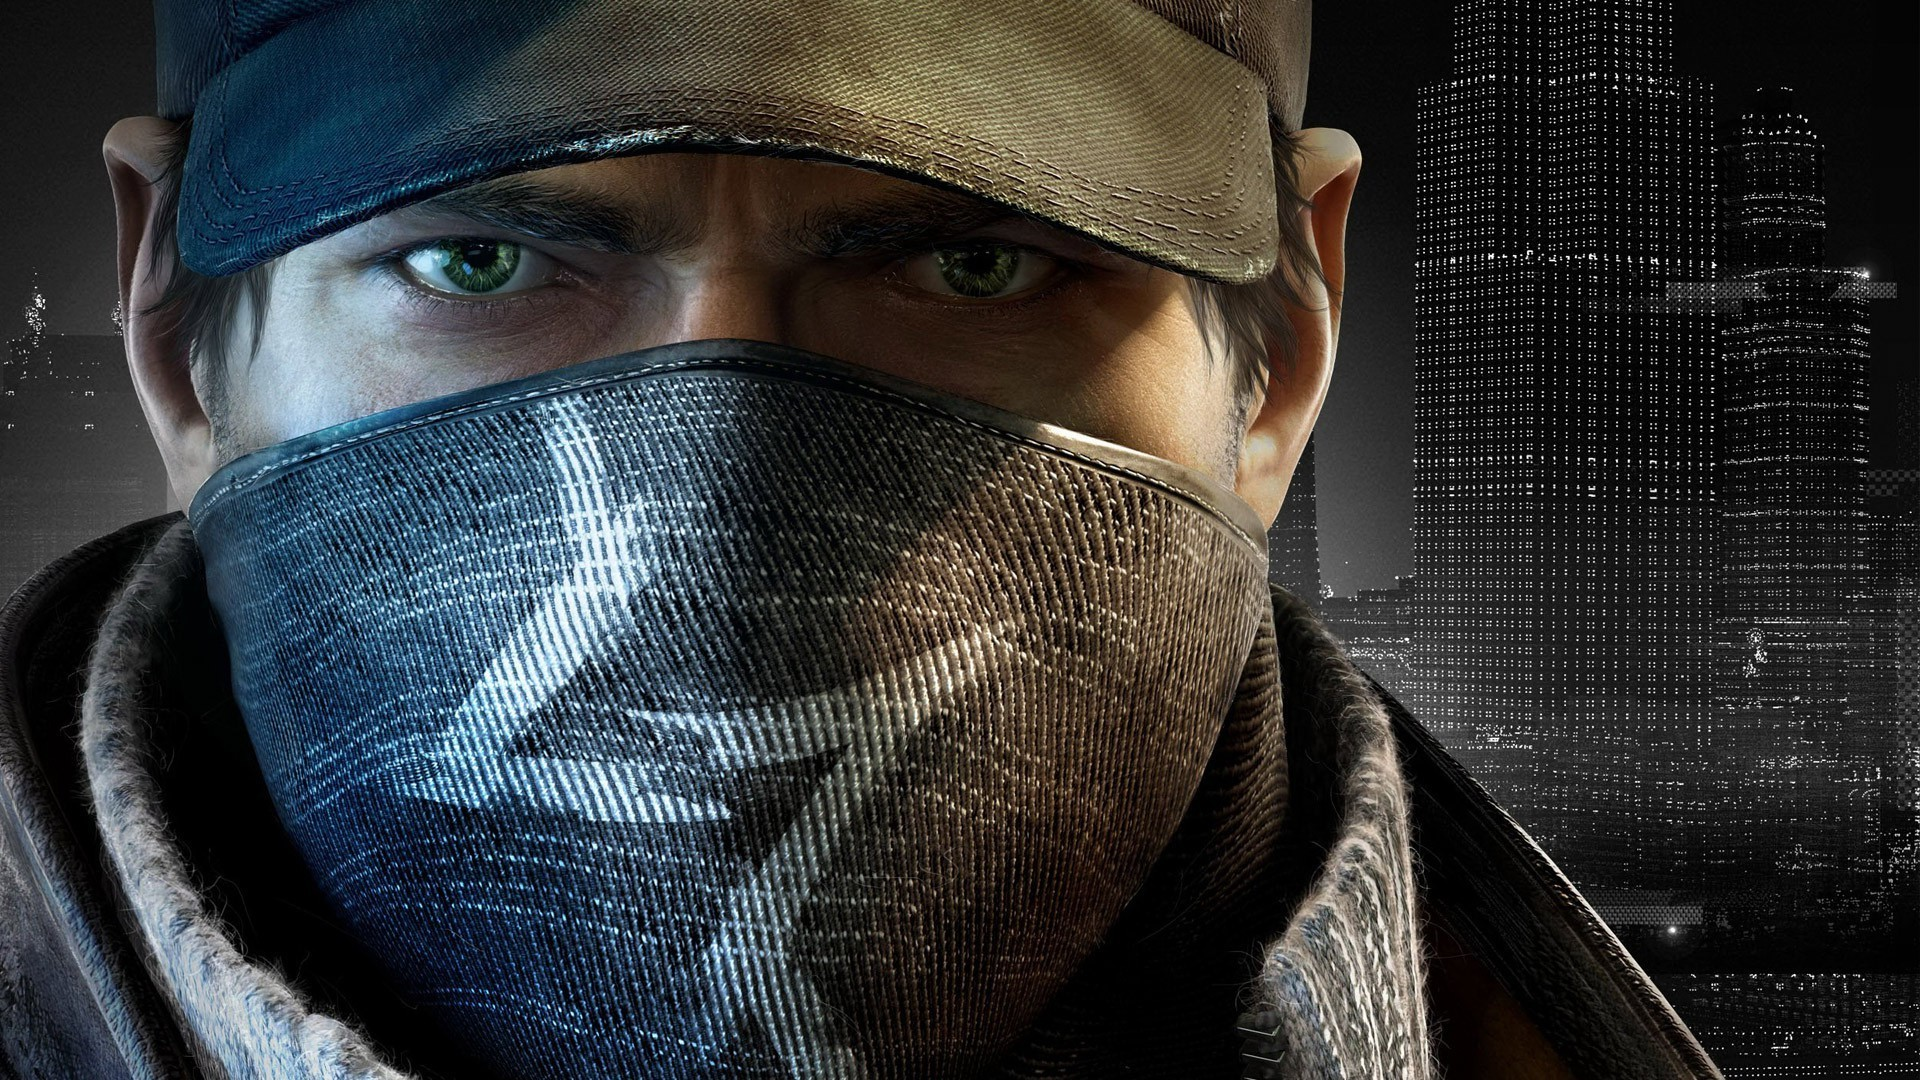 amazing-watch-dogs-wallpaper-27291-28008-hd-wallpapers